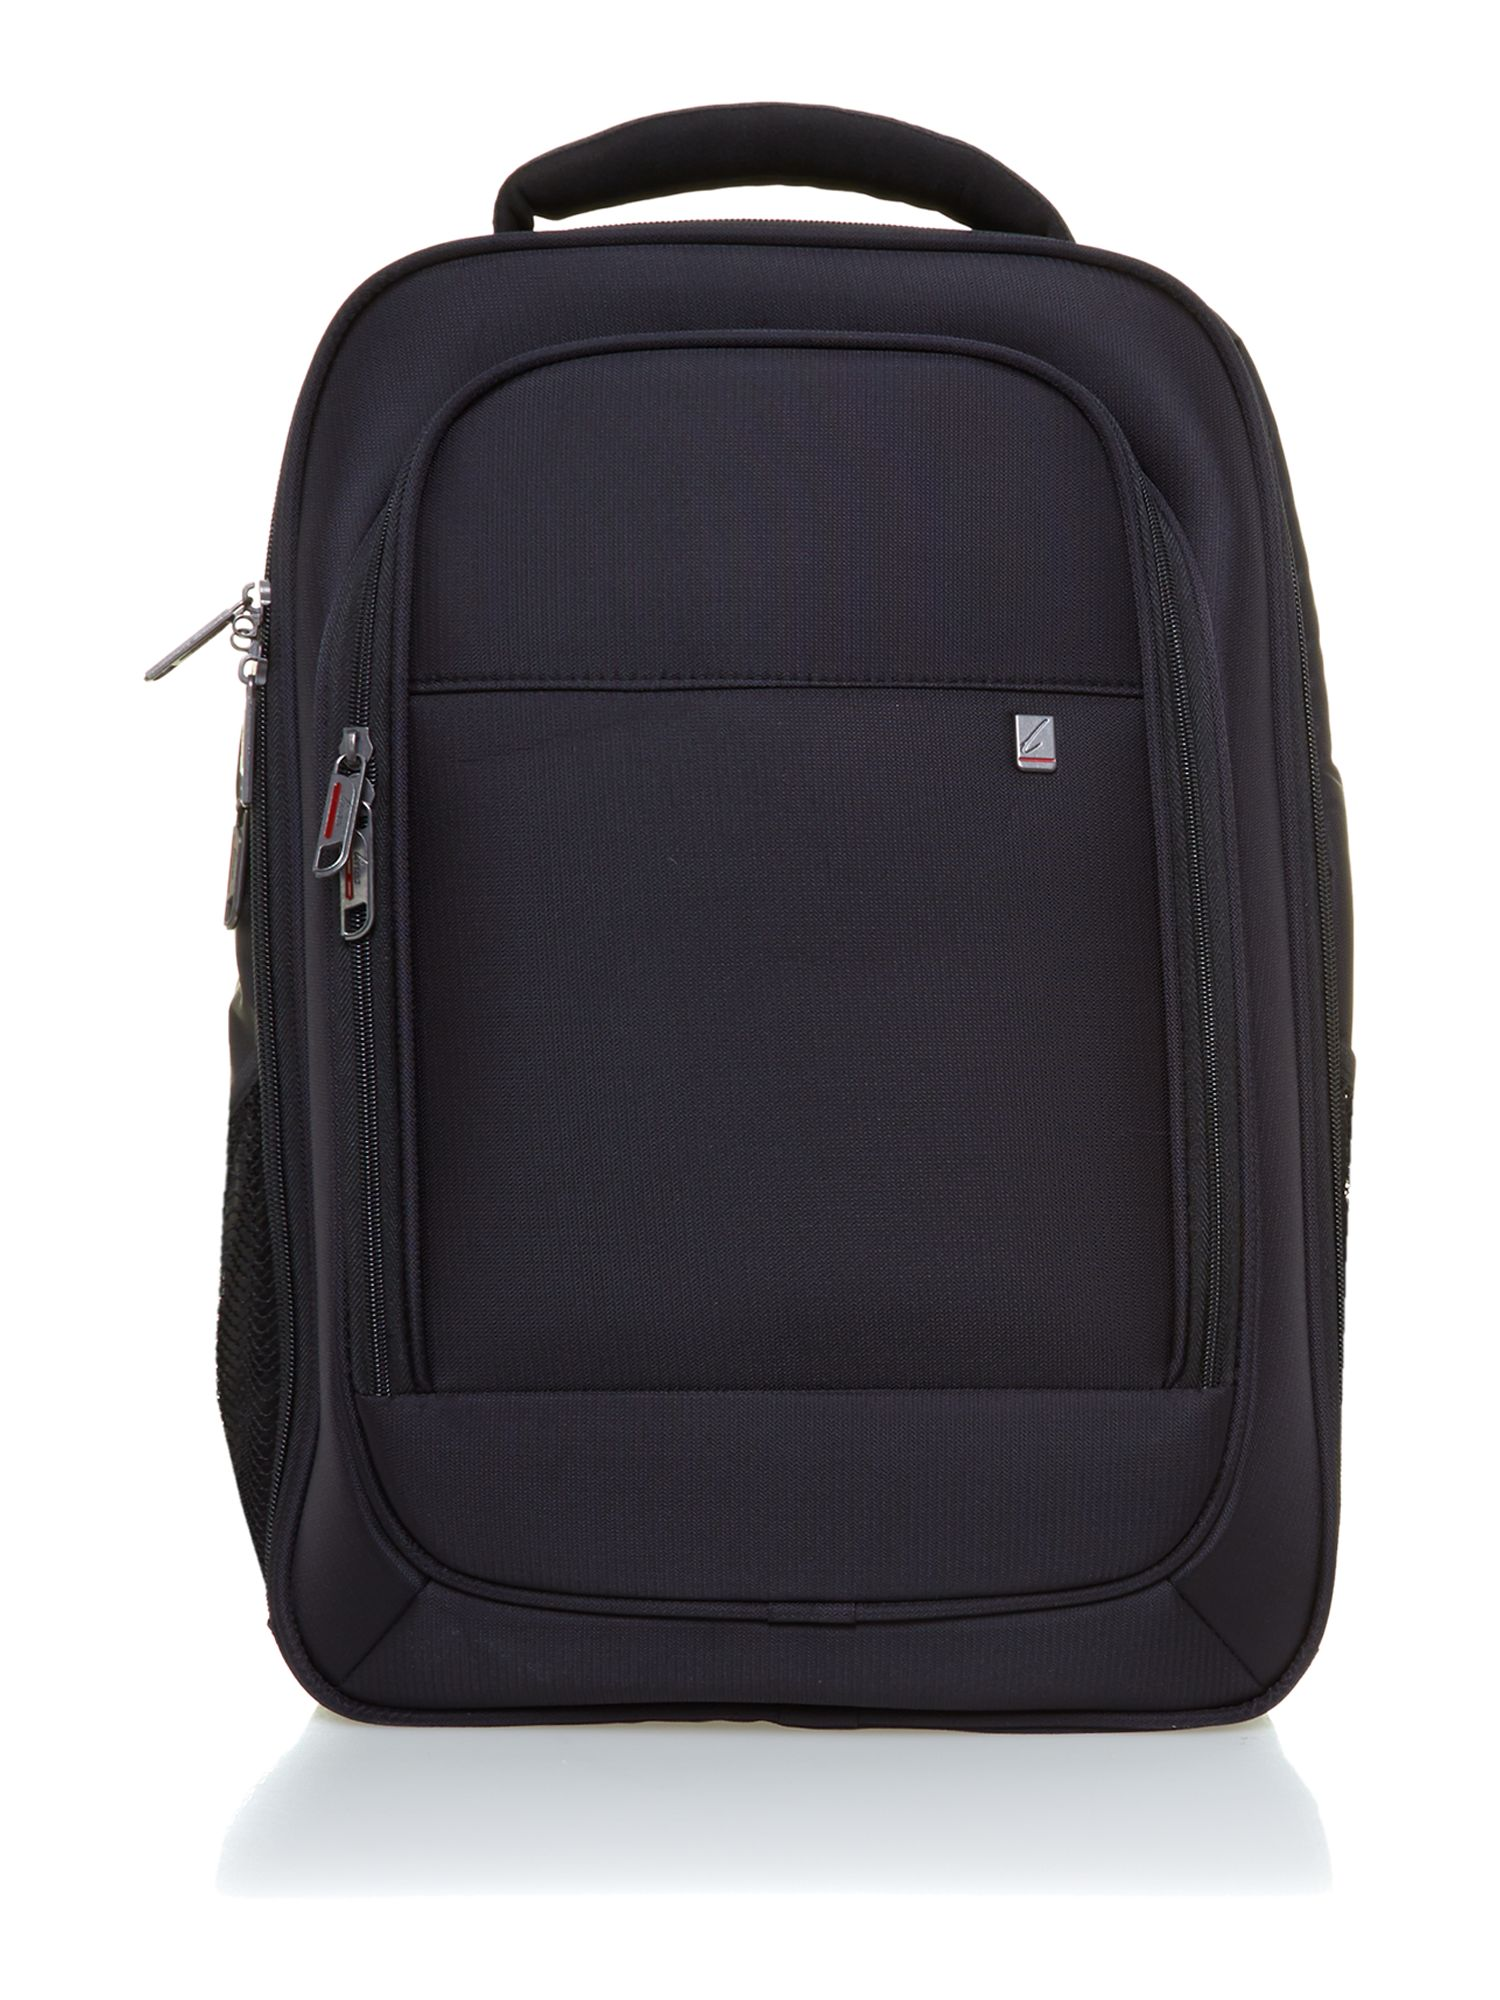 Linea executive backpack